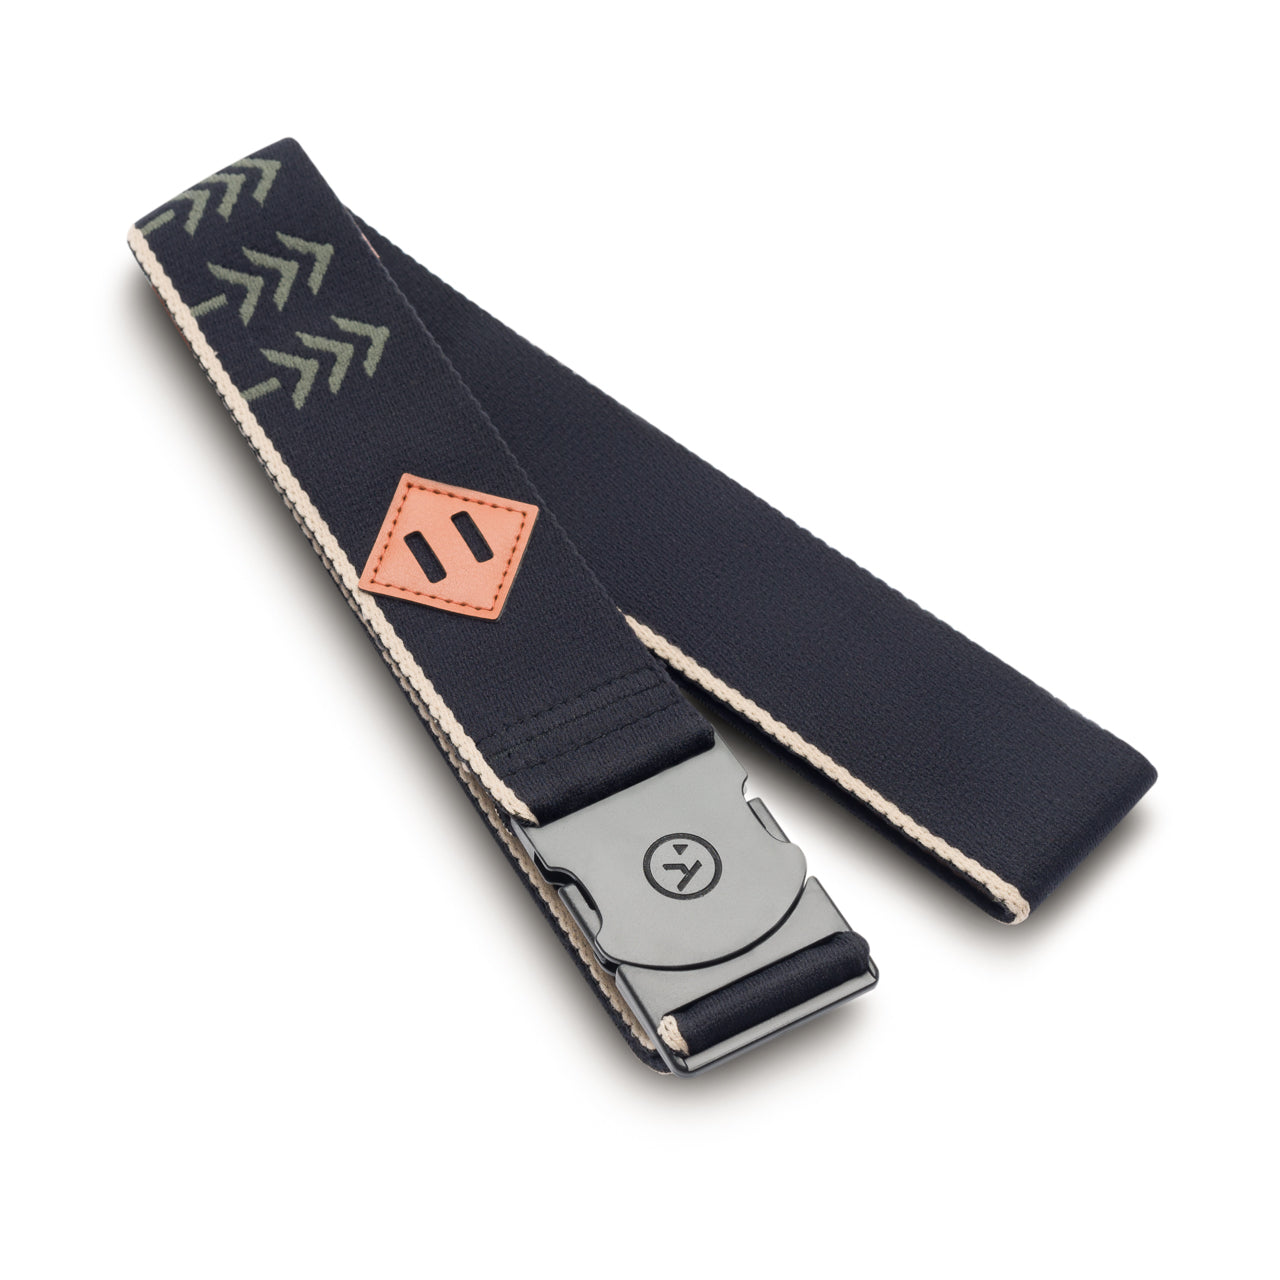 Arcade Belts Blackwood Black/Khaki